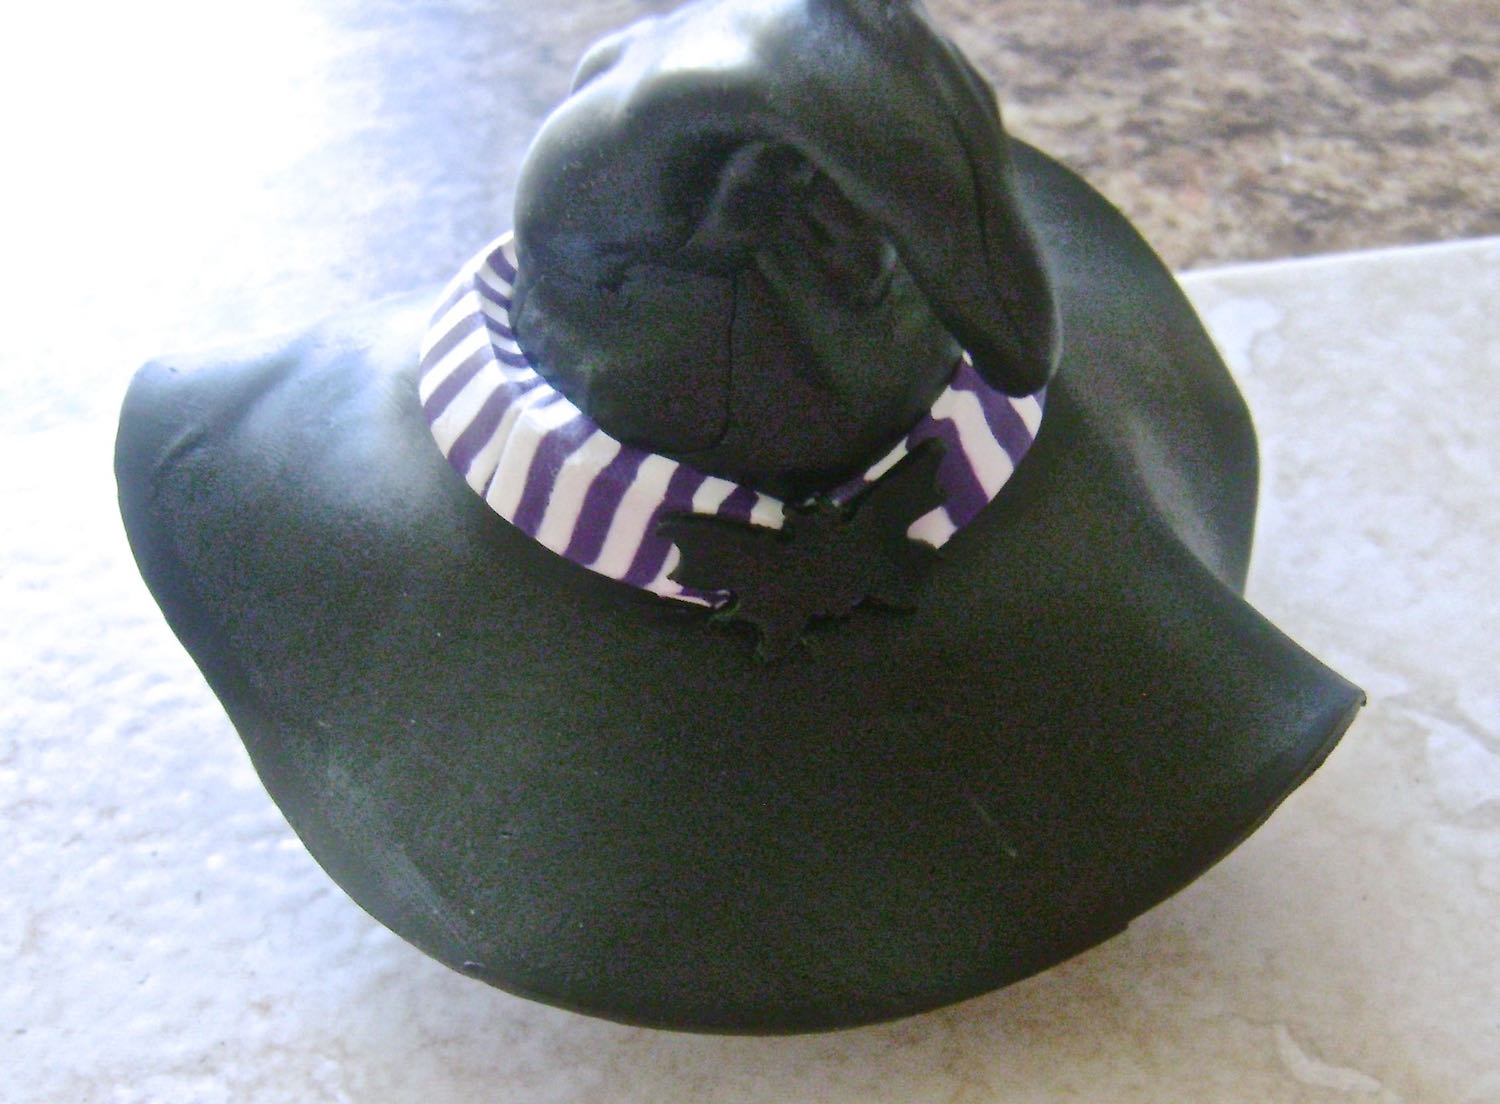 """step 8 - Place the hat on the 1.25"""" cutter for support while baking in the oven. Press a bat onto the striped band. Insert clumped up foil under the brim to retain it's shape. Without support the brim will droop and the hat won't seat on the ornament properly."""